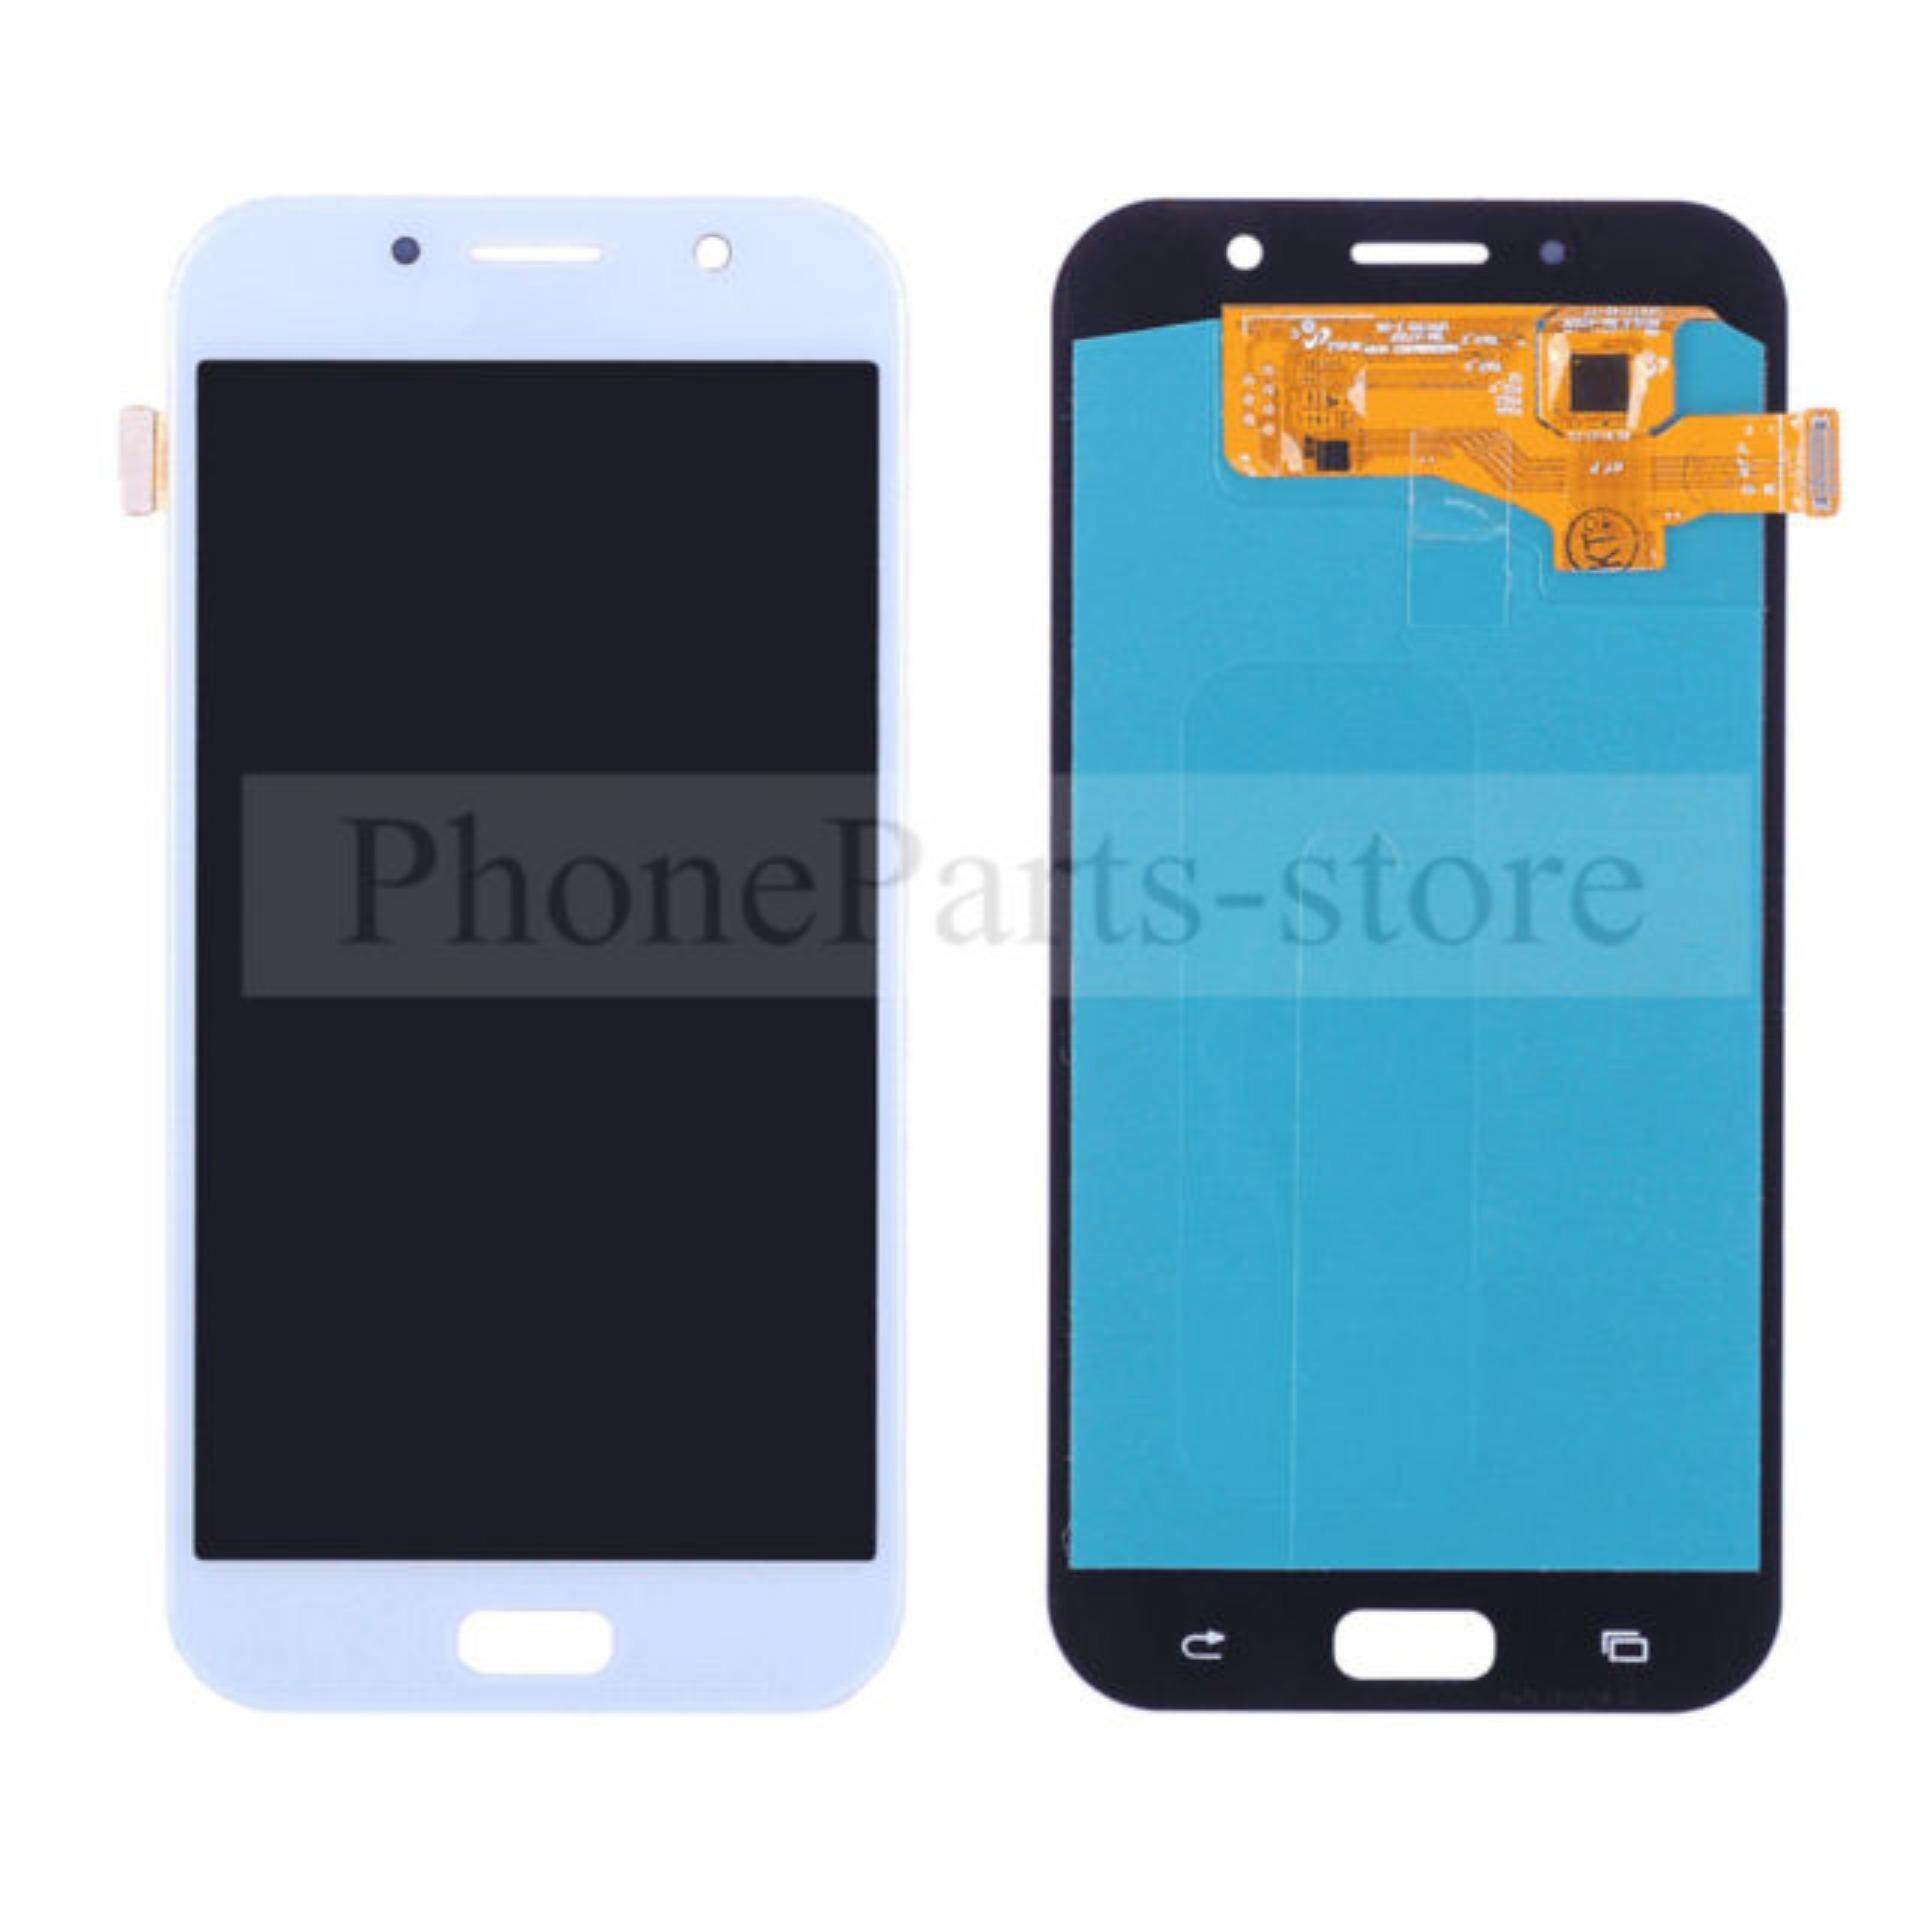 Features Ipartsbuy Lcd Screen Replacement For Samsung Galaxy Grand Tempered Glass Neo I9060 Display Touch Digitizer Assembly A7 2016